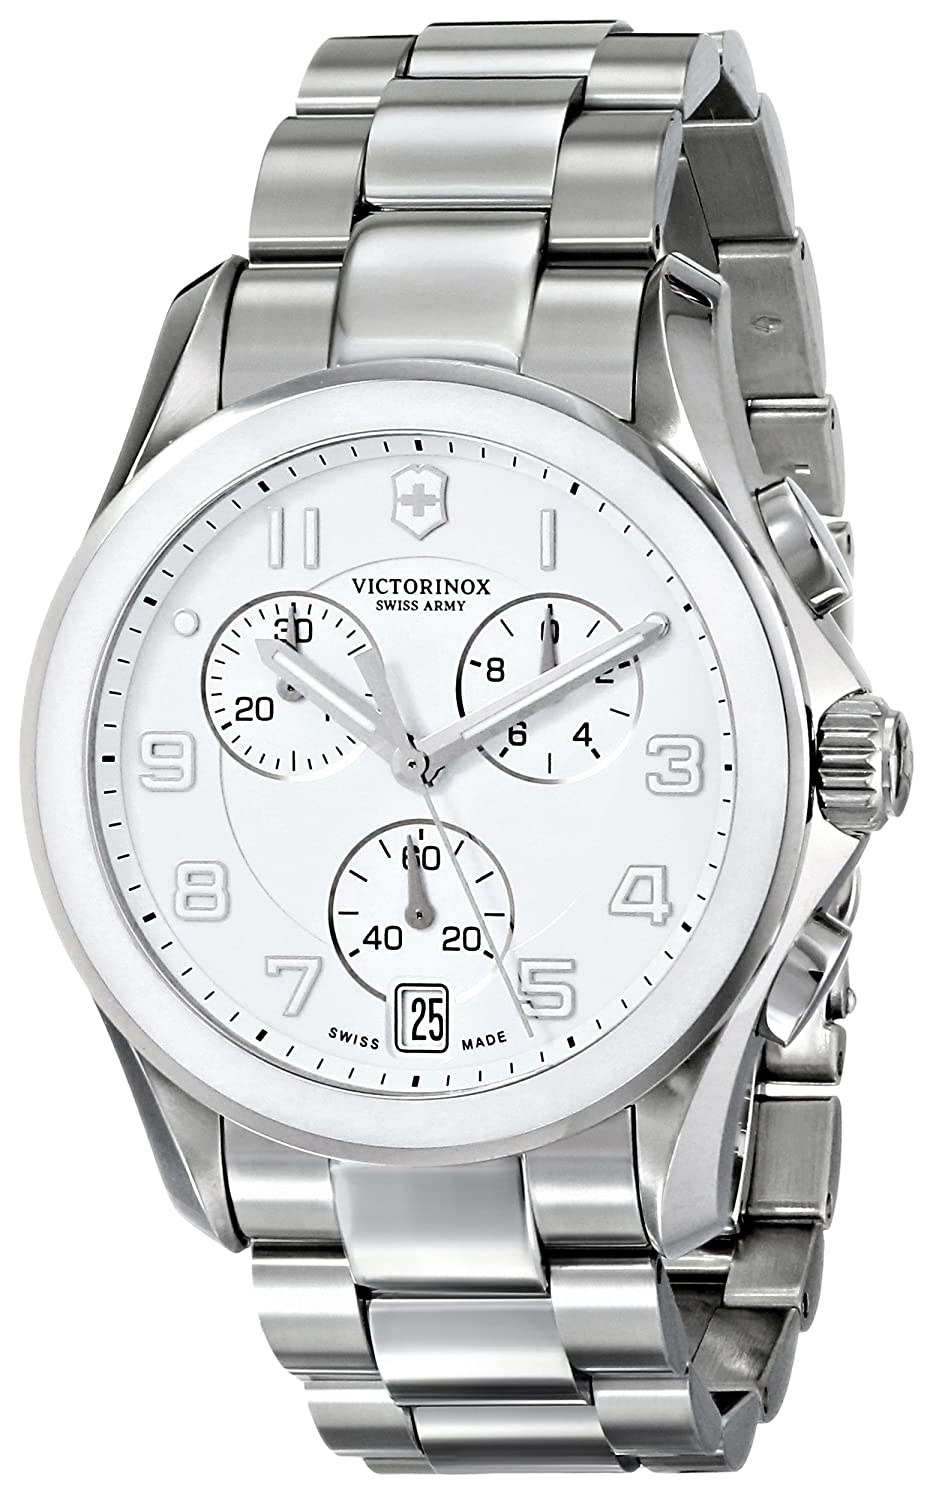 VICTORINOX CLASSIC CHRONO MEN'S STAINLESS STEEL CASE CHRONOGRAPH UHR 241538